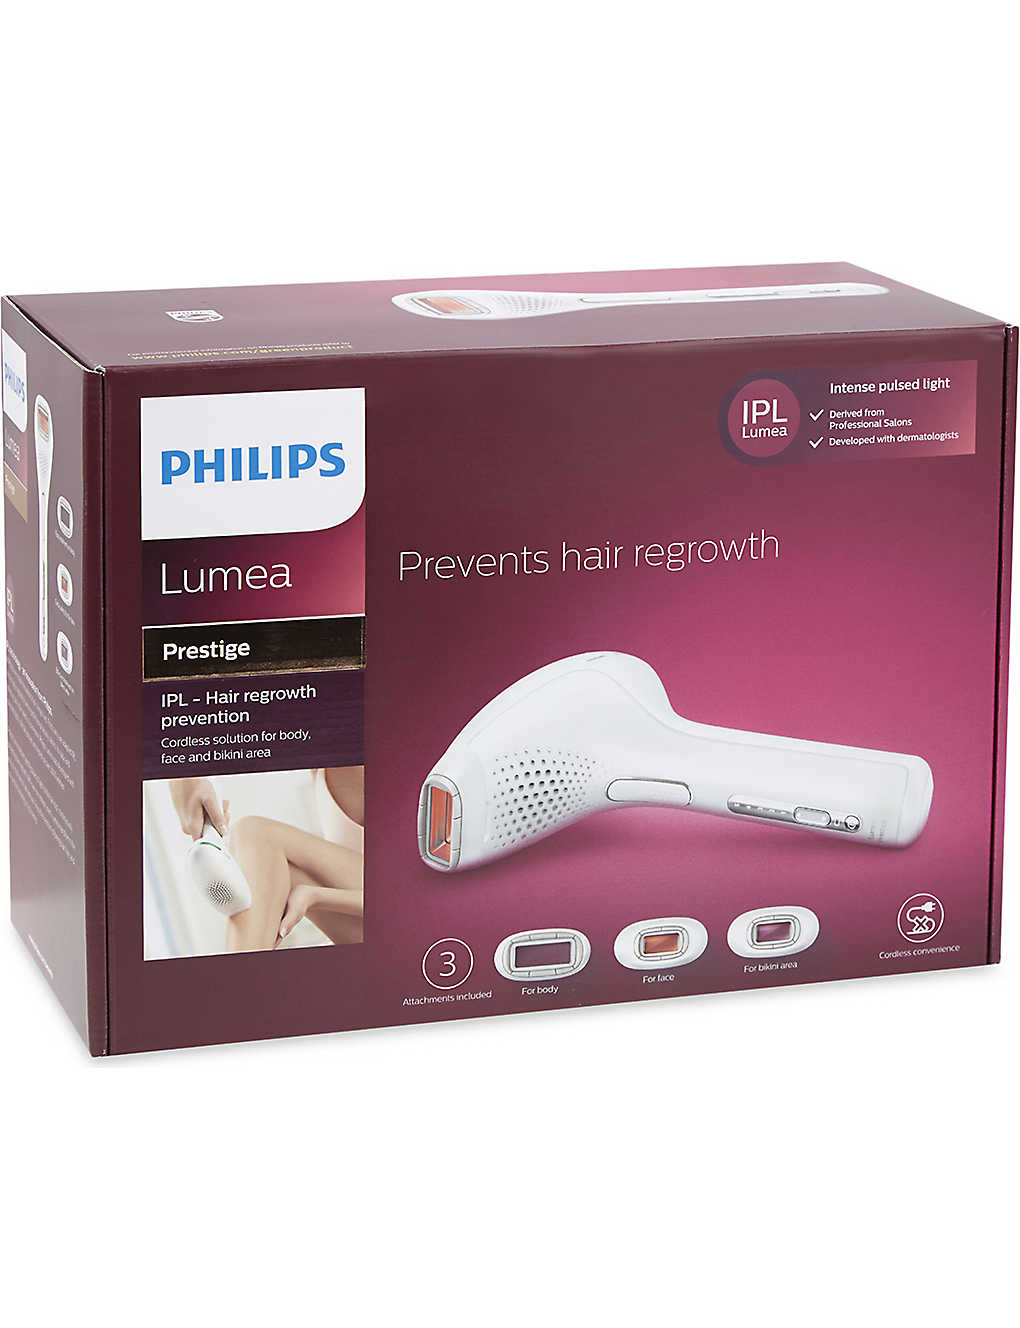 Philips Lumea Prestige Ipl Hair Regrowth Prevention